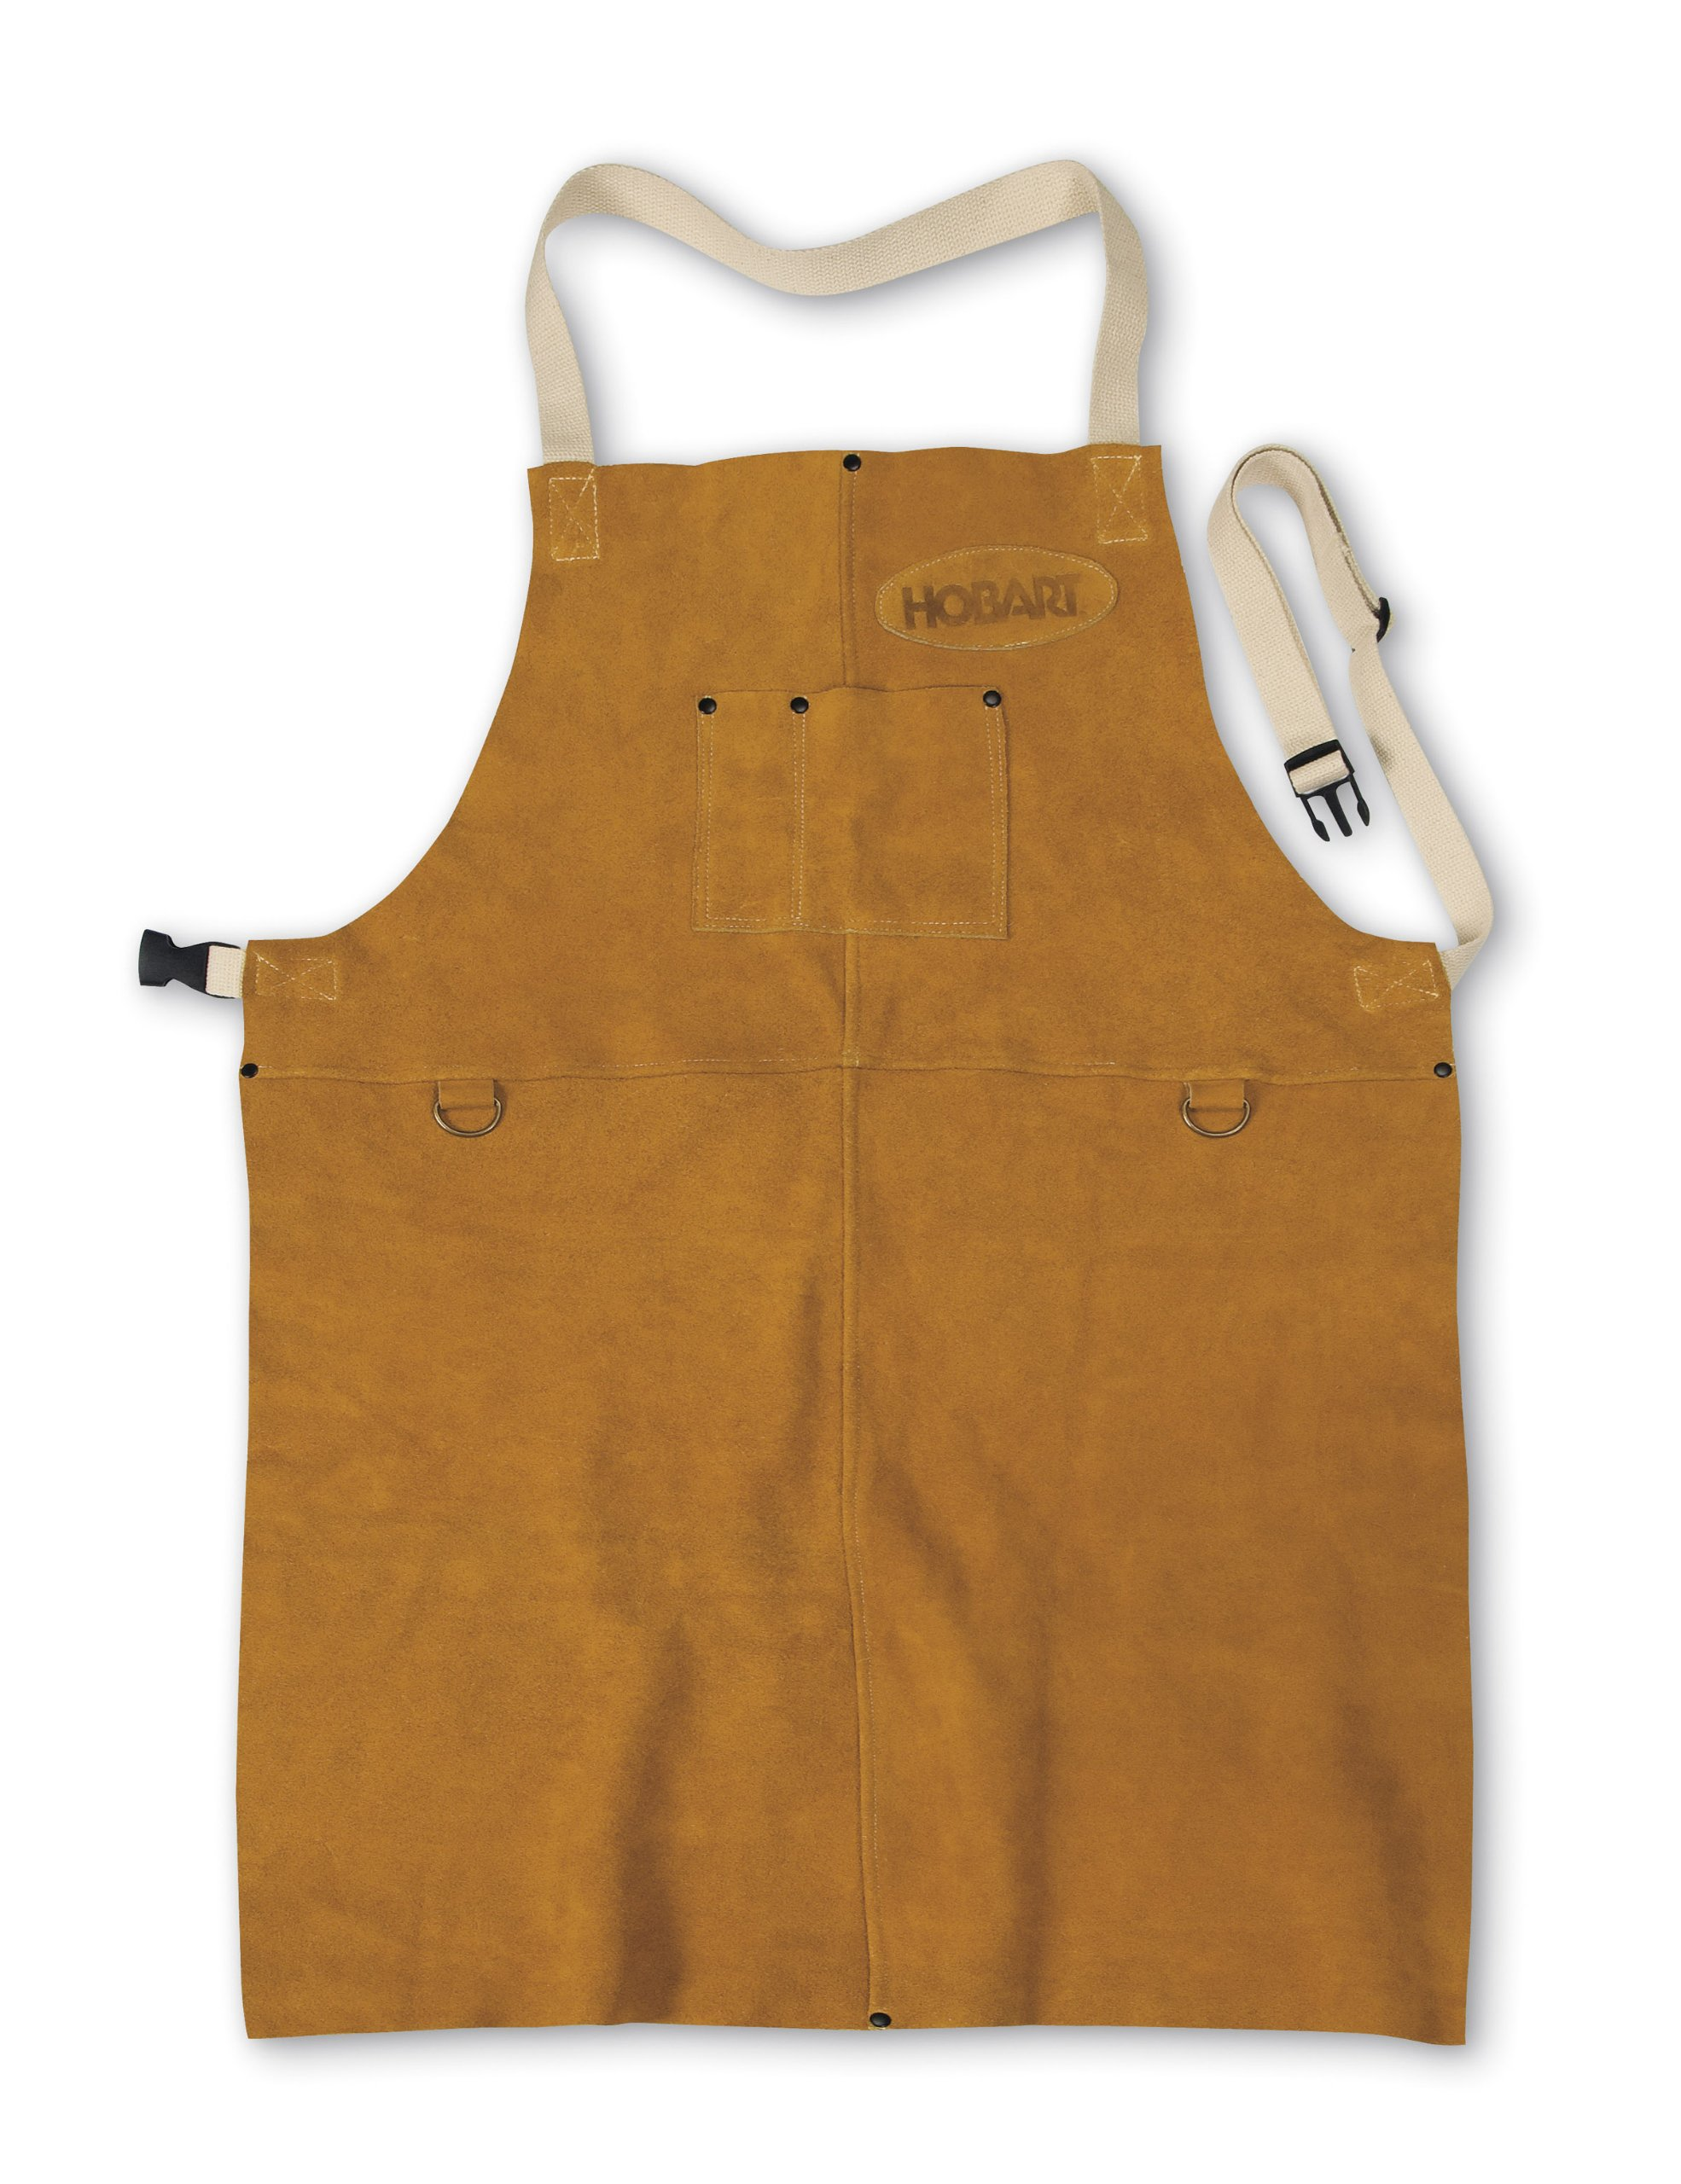 Hobart 770548 Leather Welding Apron by Hobart